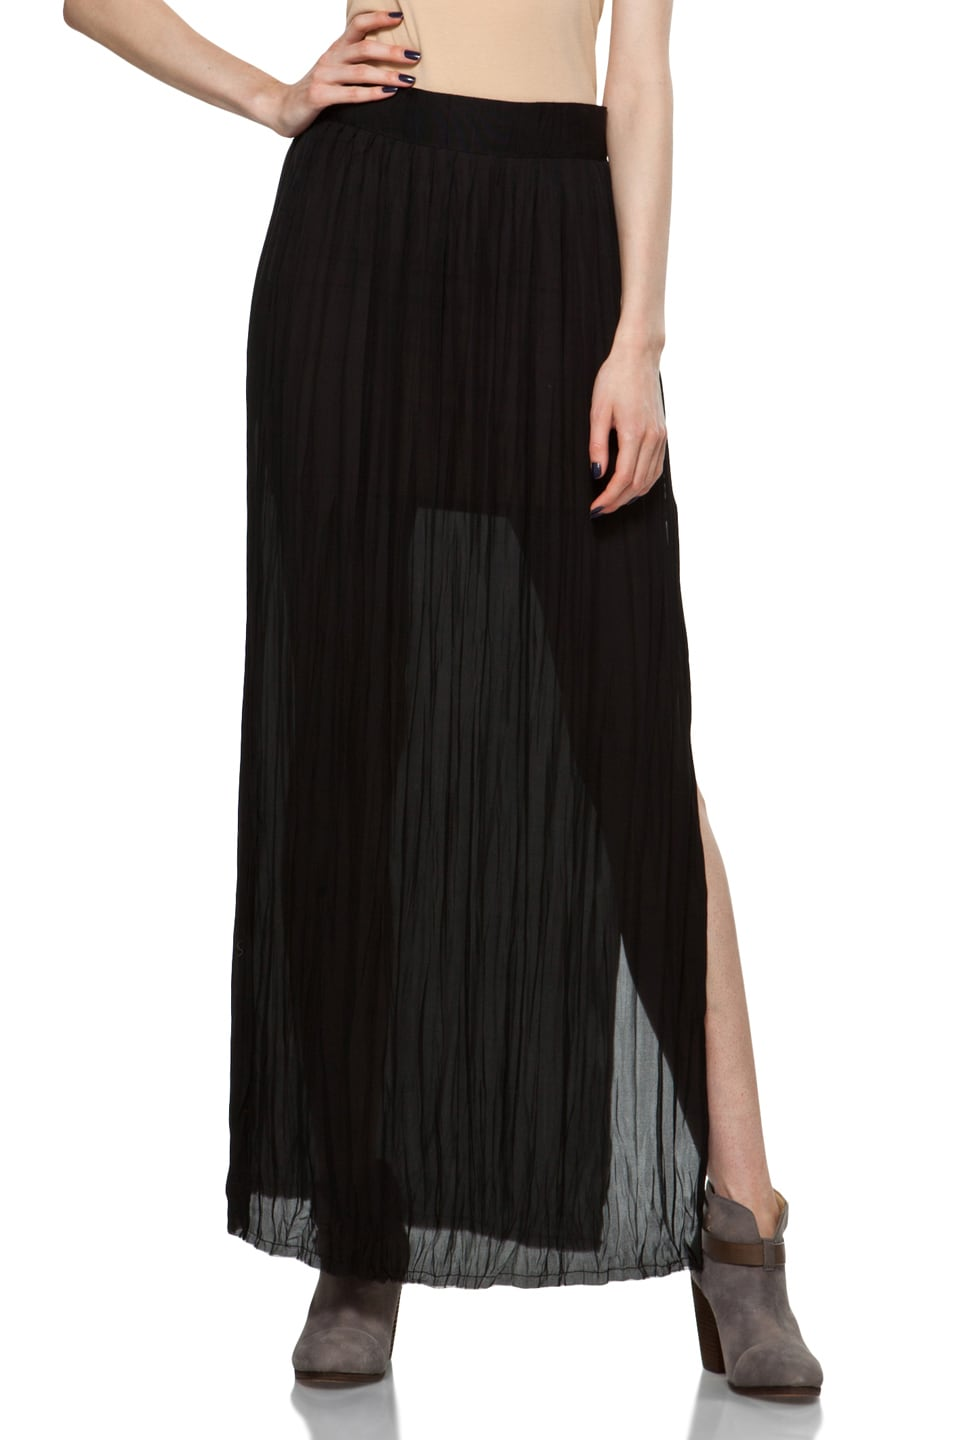 Image 1 of Nili Lotan Wrinkled Skirt in Black